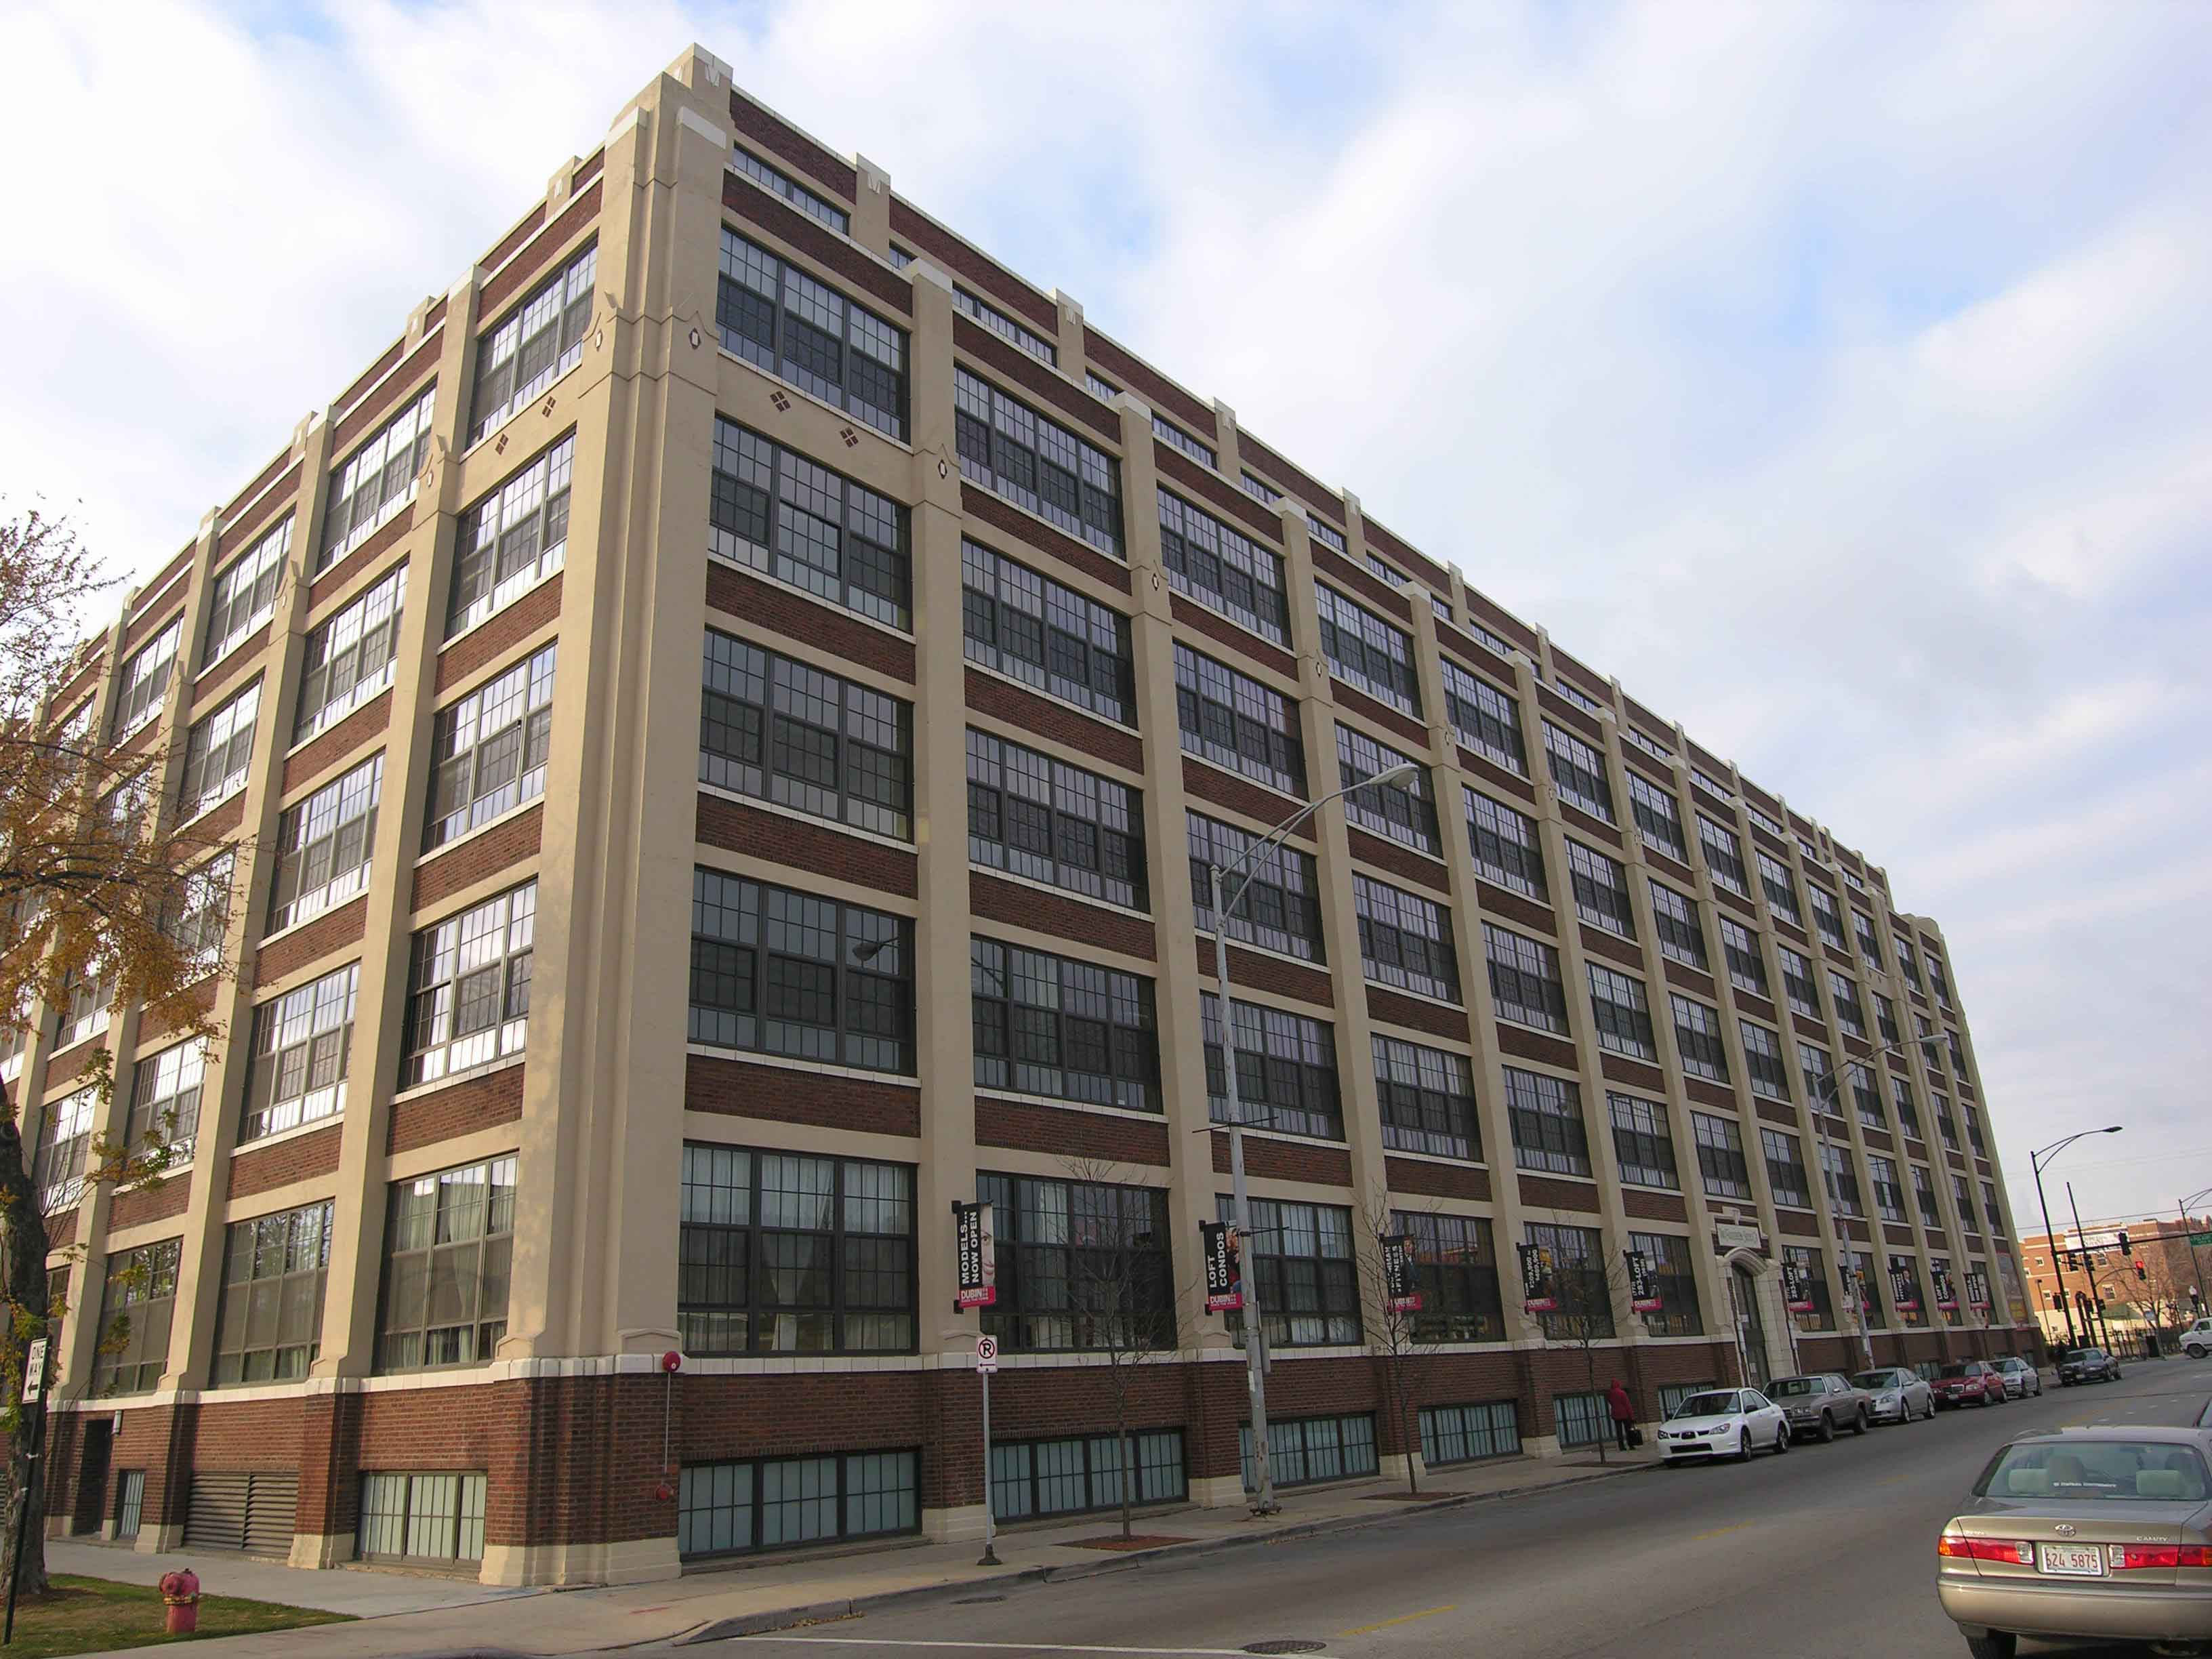 Shoemaker Lofts, 3963 W Belmont Ave, Chicago